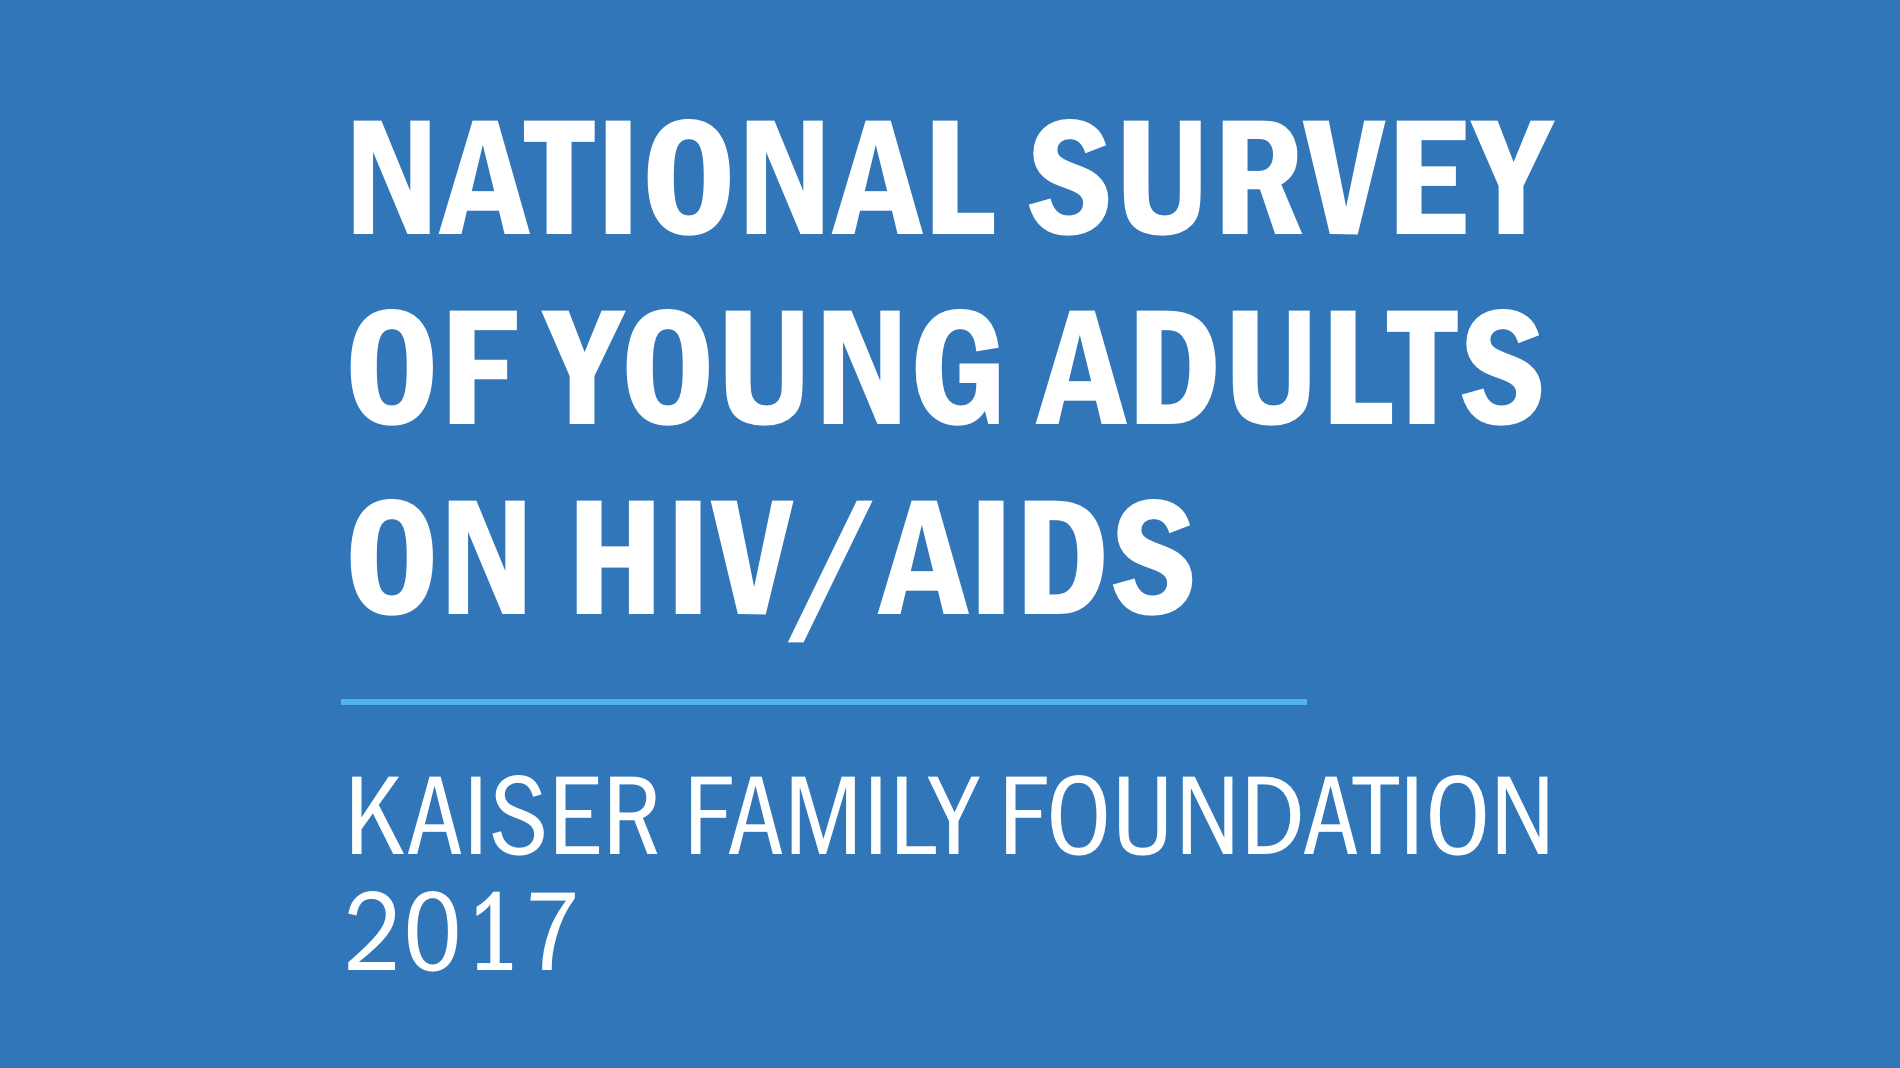 National Survey of Young Adults on HIV/AIDS - Kaiser Family Foundation 2017